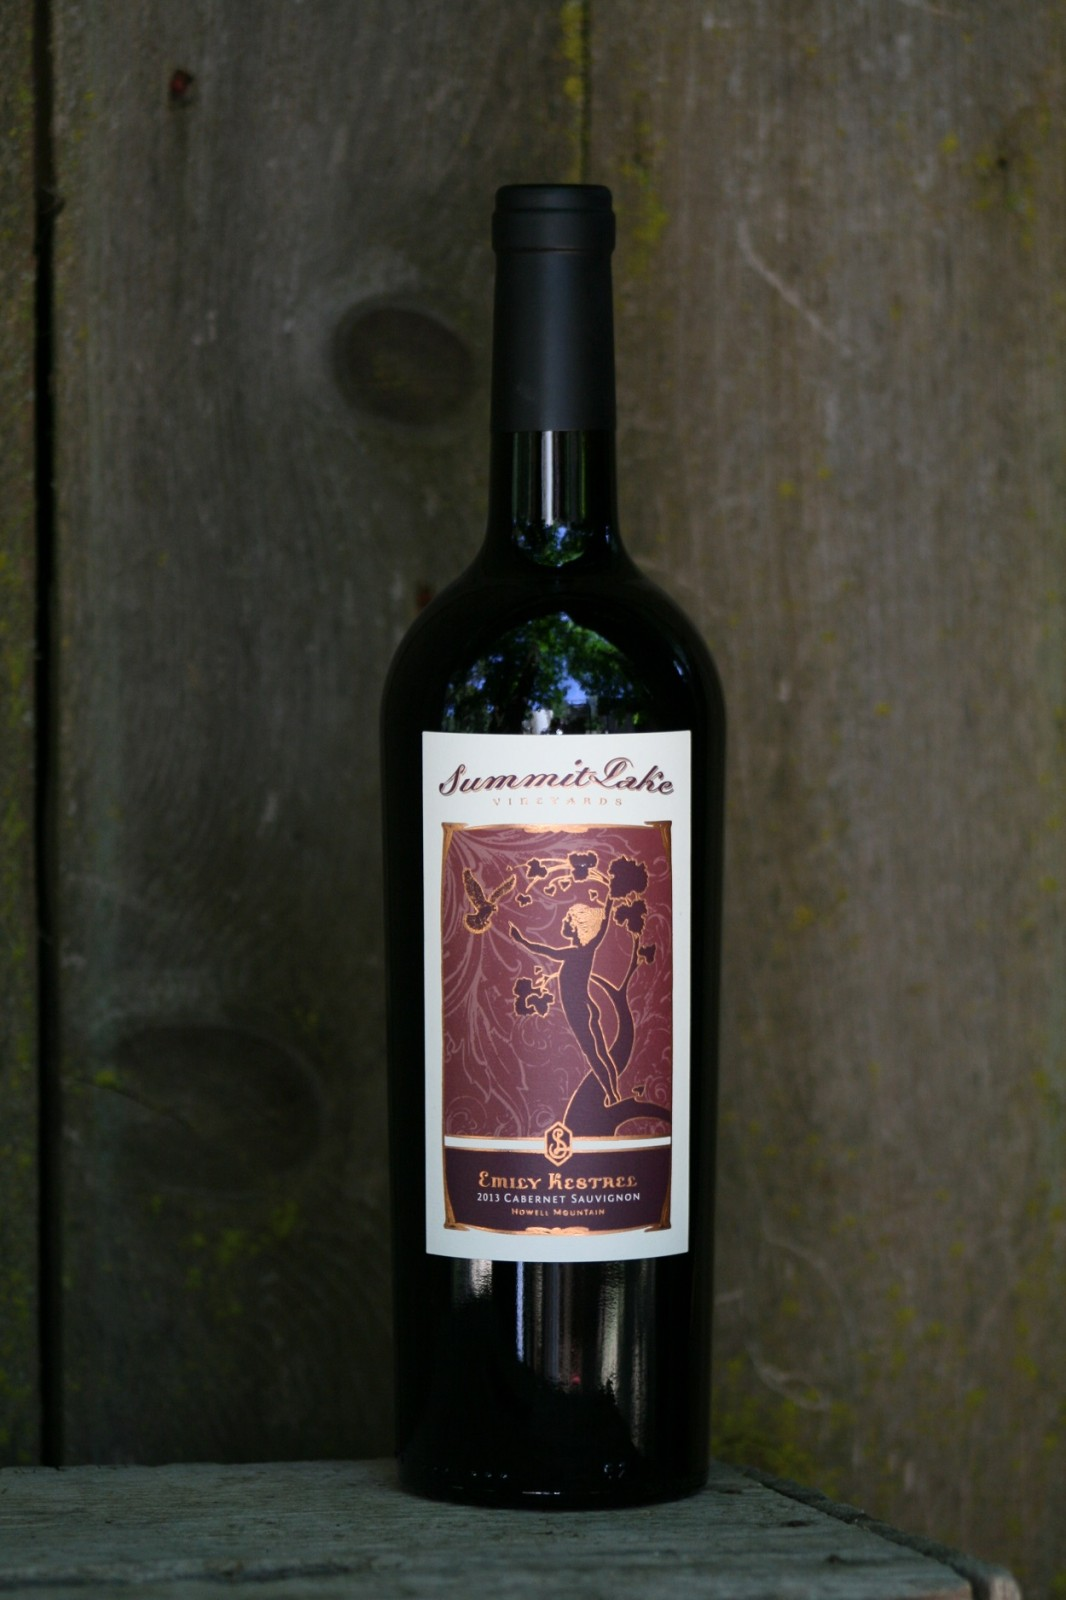 2014 Emily Kestrel Cabernet Sauvignon 750 Howell Mountain, Napa Valley - Summit Lake Vineyards & Winery